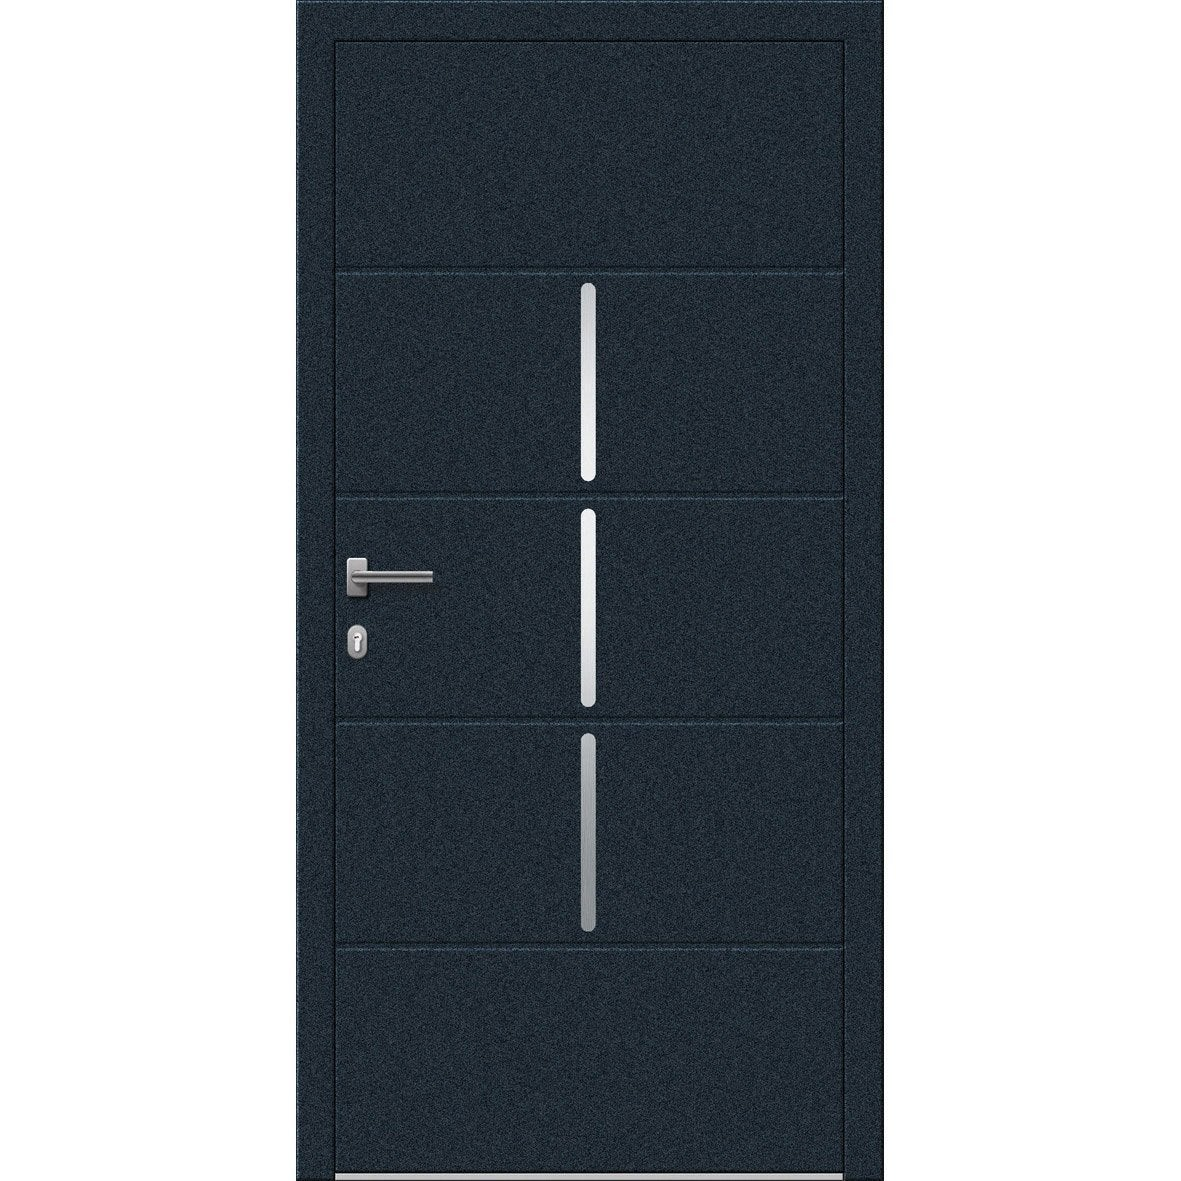 porte d 39 entr e sur mesure en aluminium miami excellence. Black Bedroom Furniture Sets. Home Design Ideas